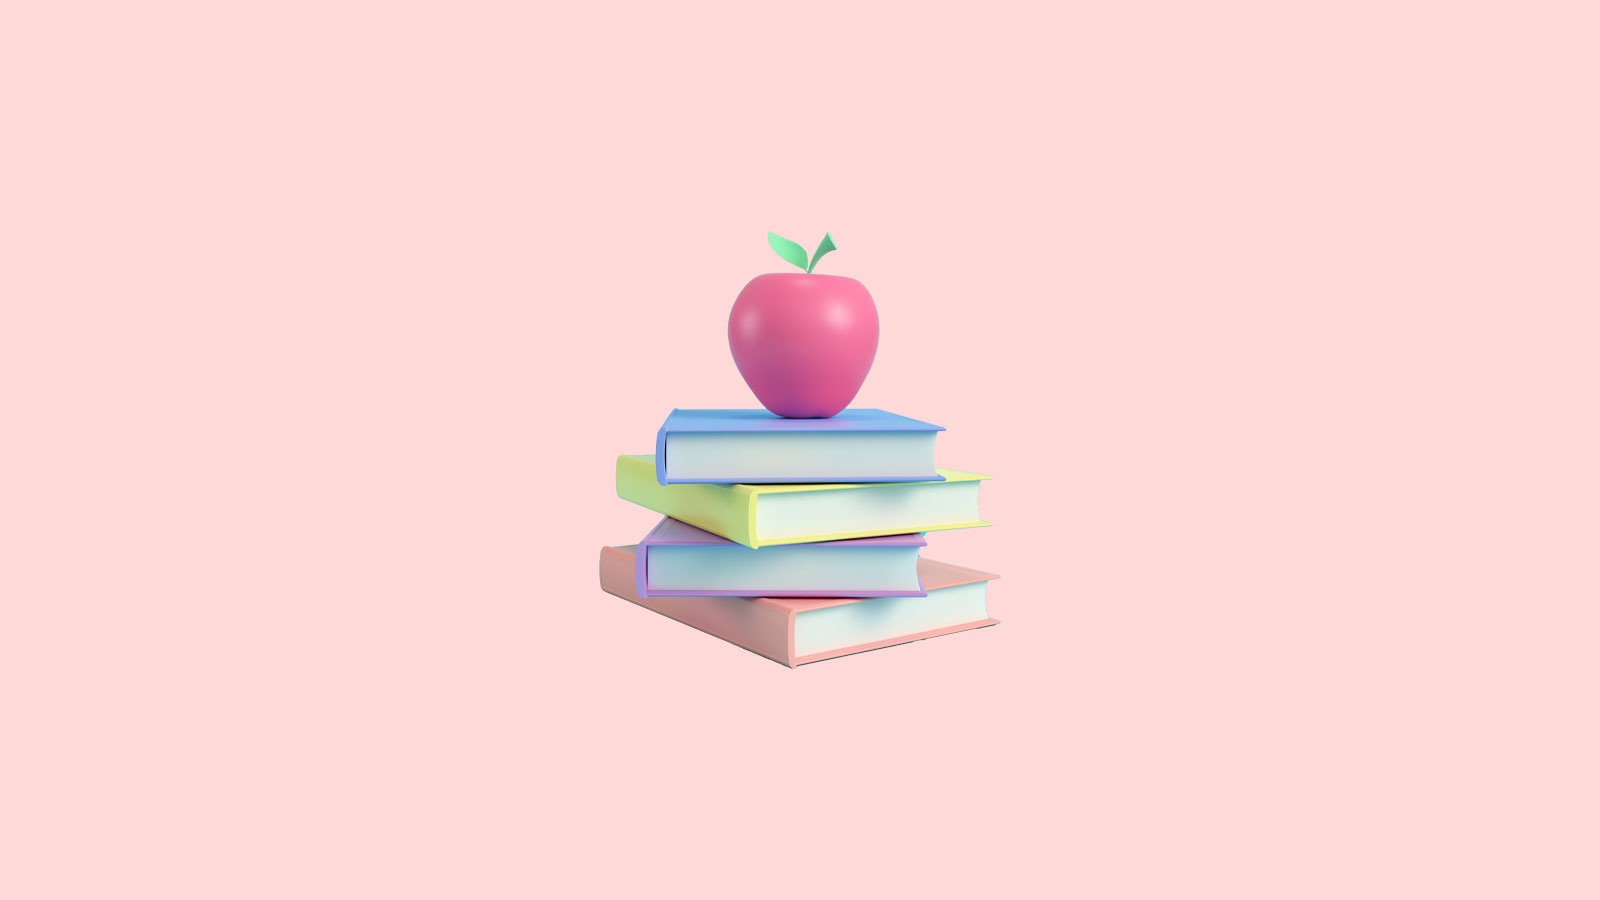 Stack of books and an apple on a pink background